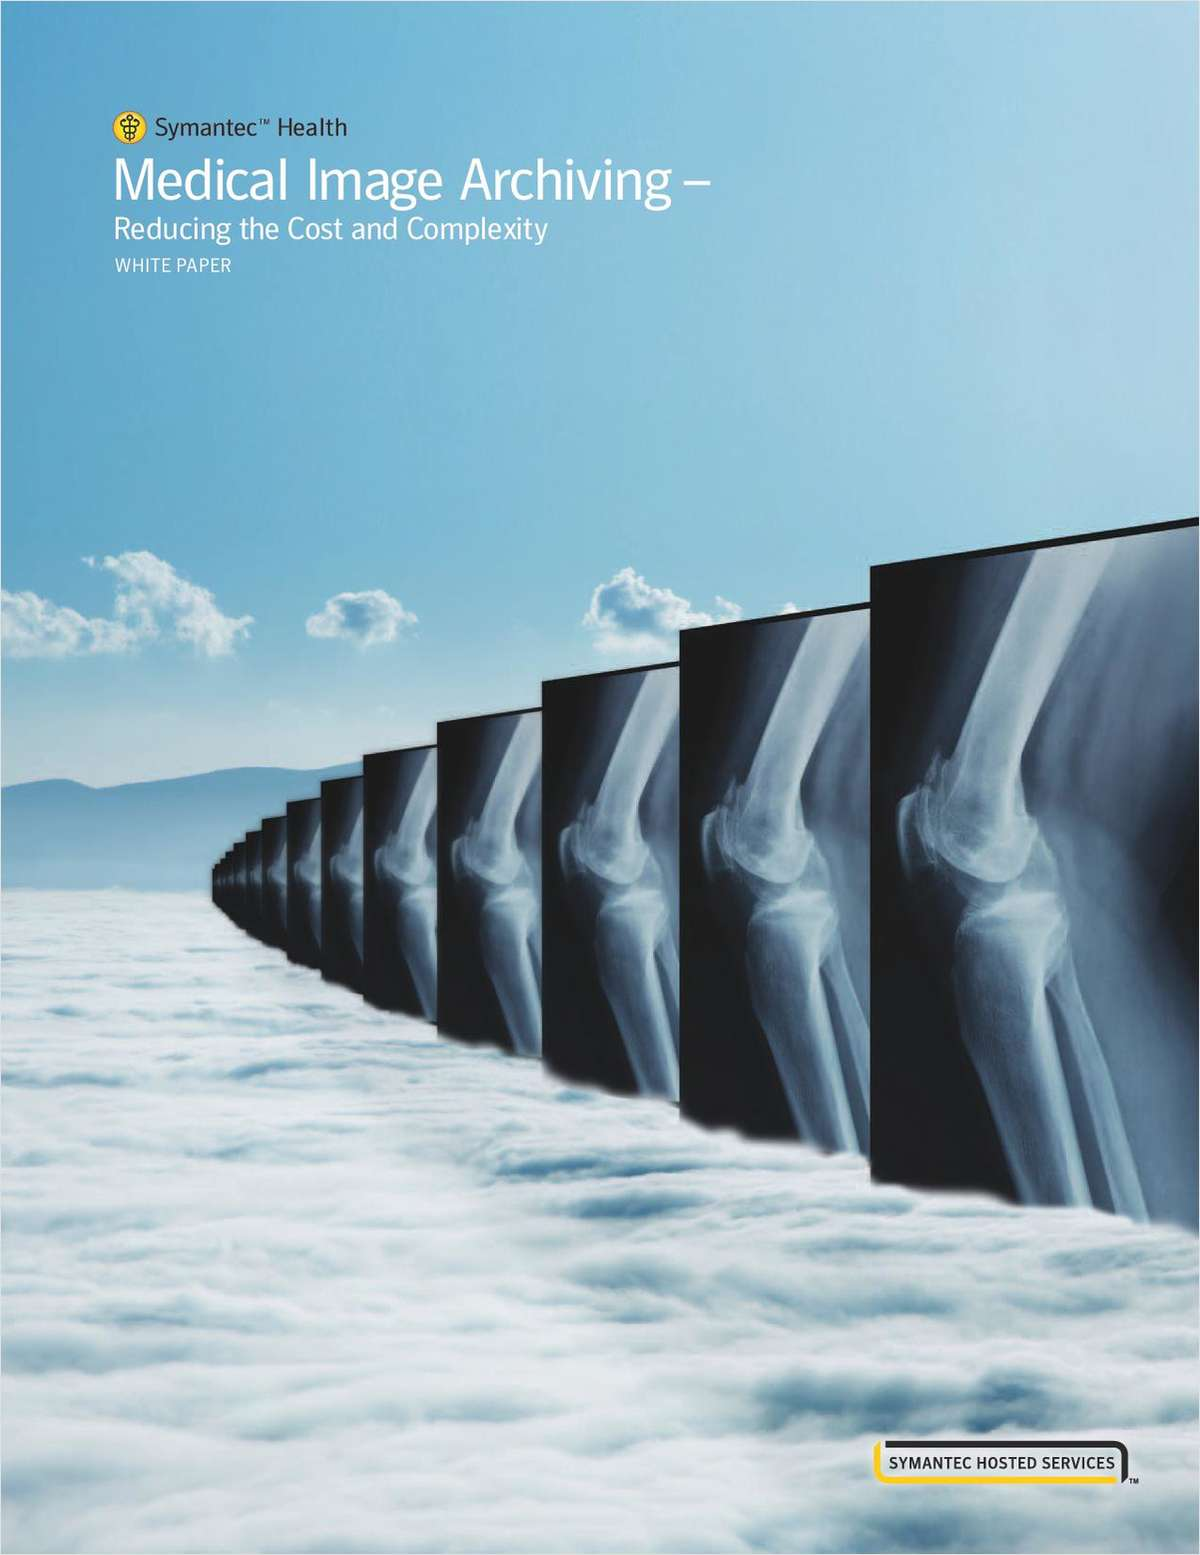 Medical Image Archiving – Reducing the Cost and Complexity